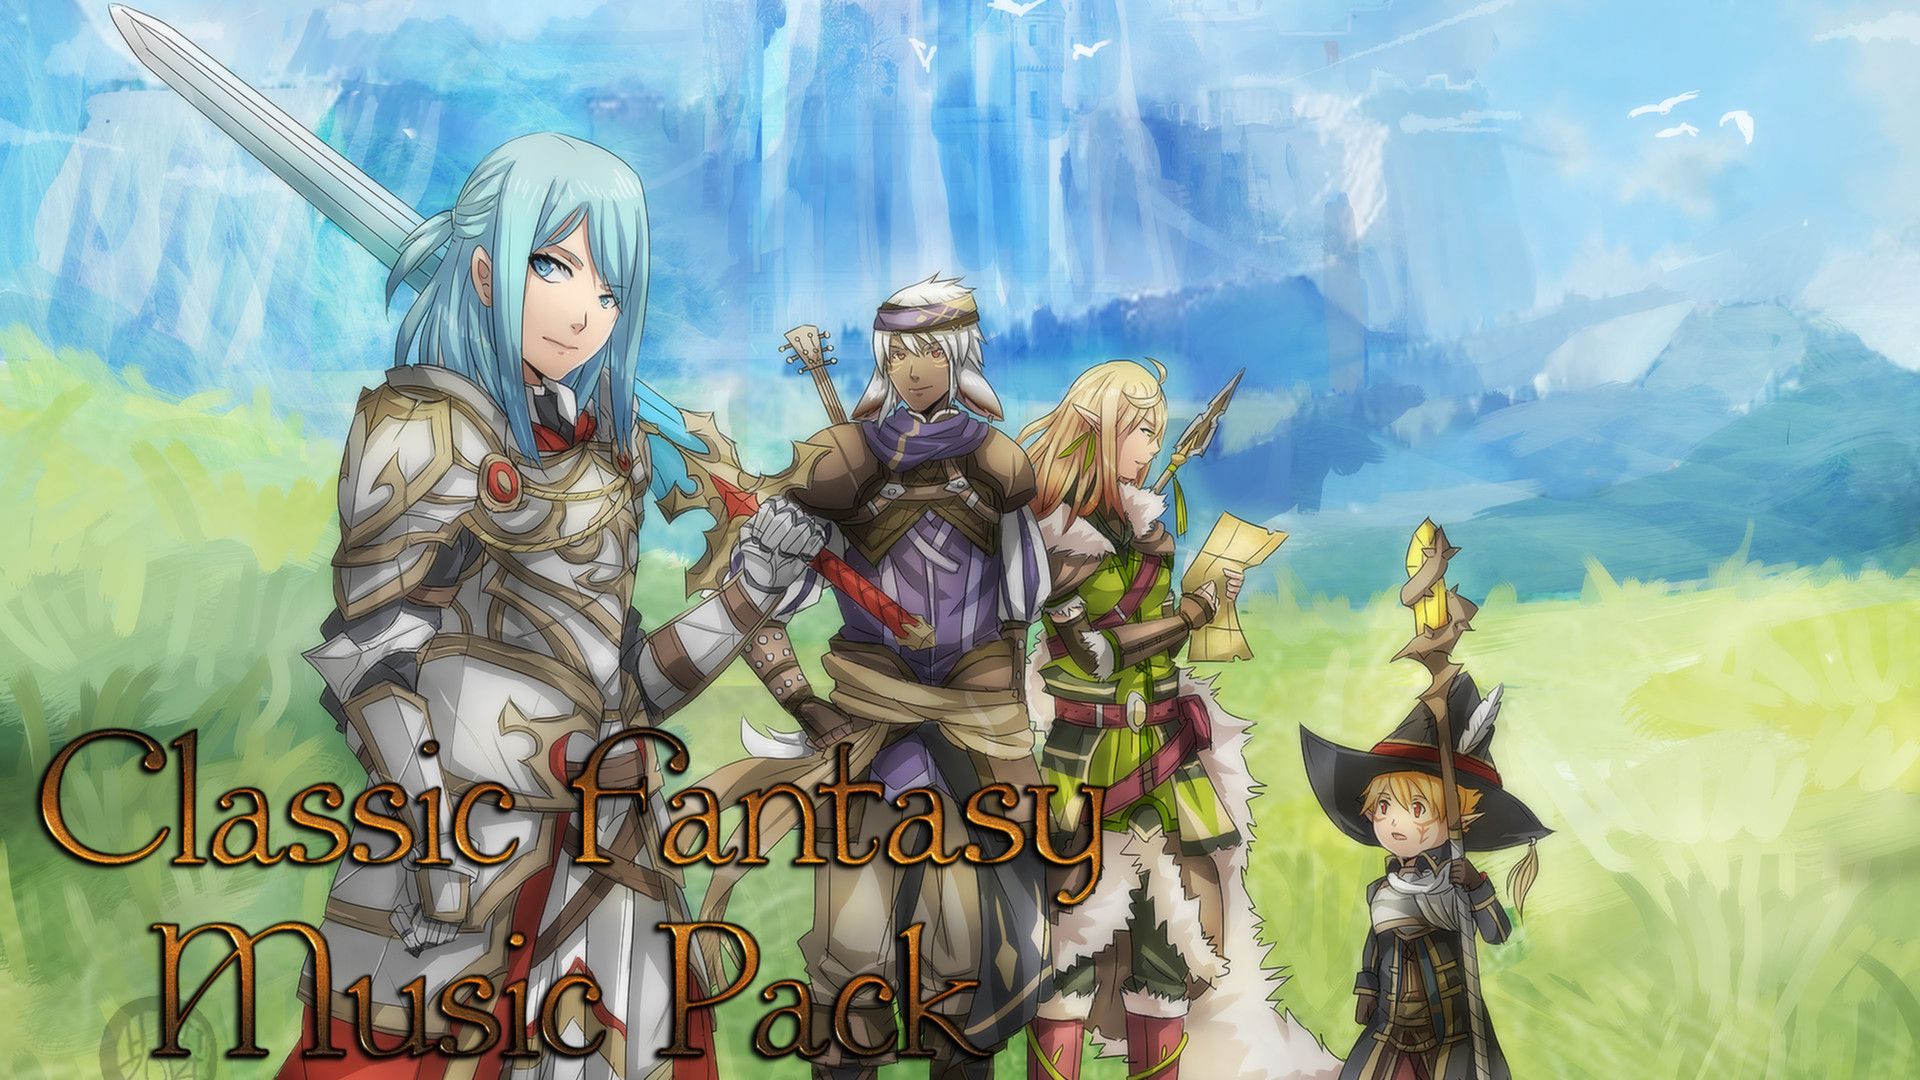 RPG Maker VX Ace - Classic Fantasy Music Pack screenshot